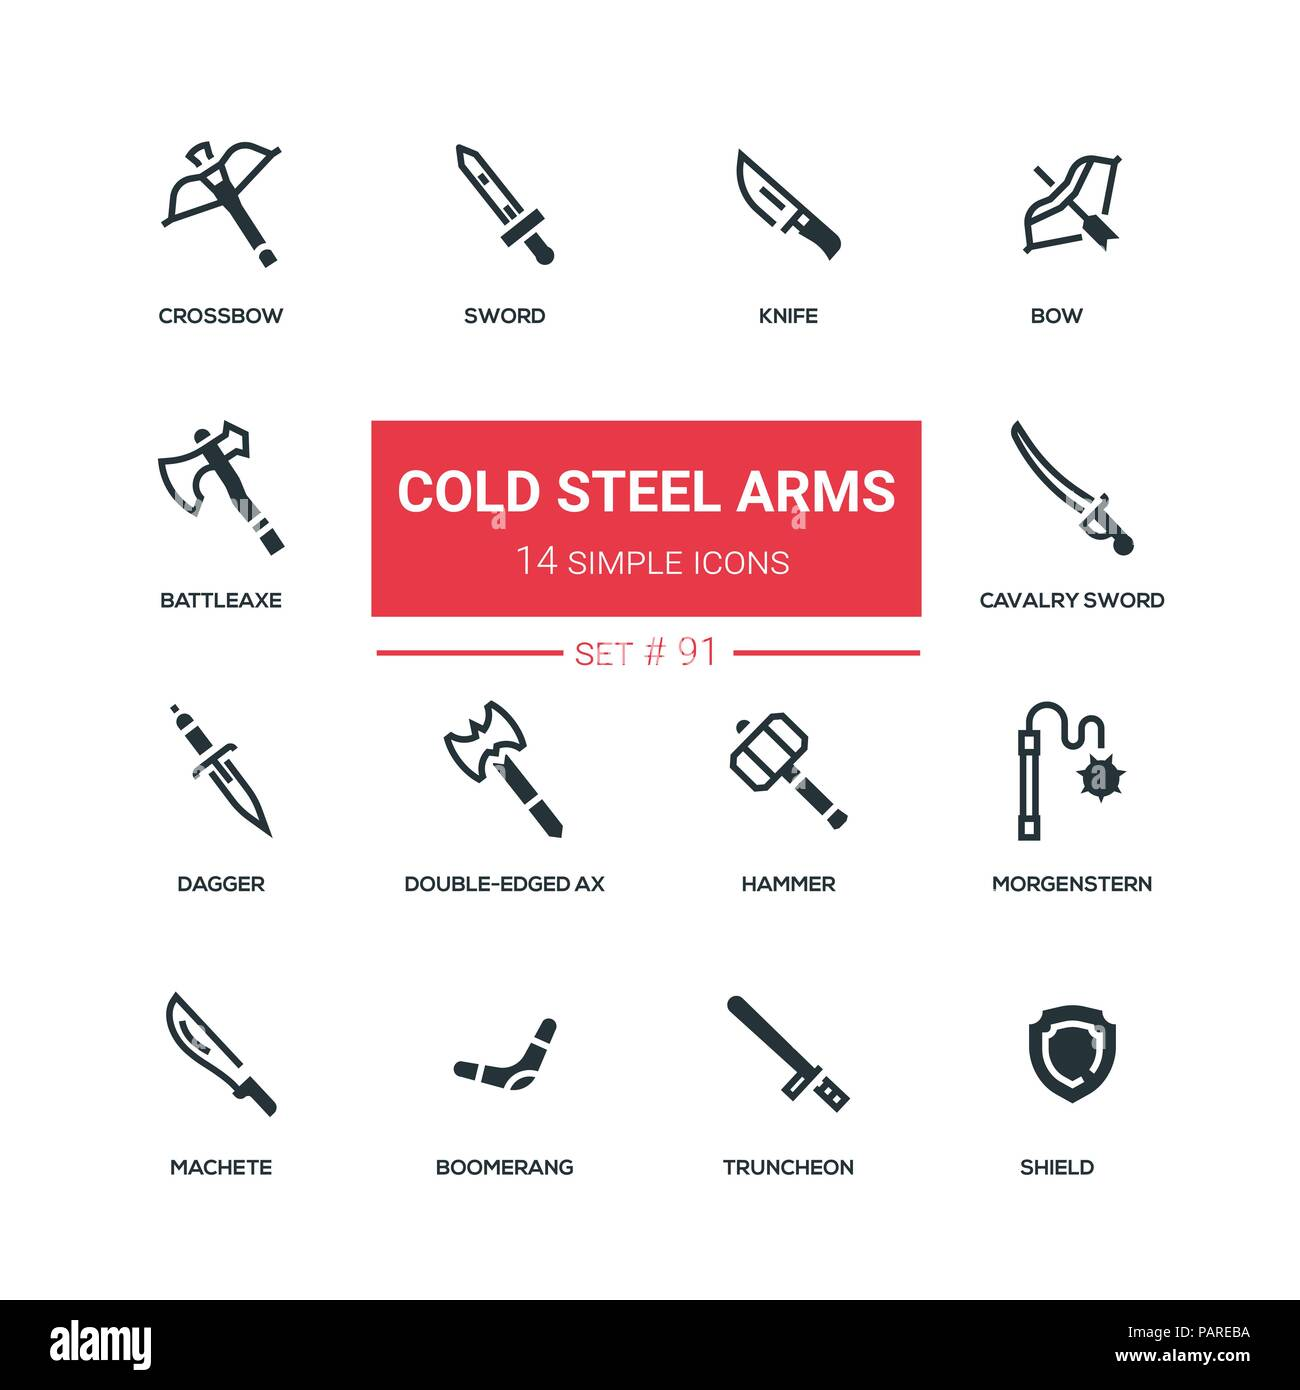 Cold steel arms - flat design style icons set - Stock Image